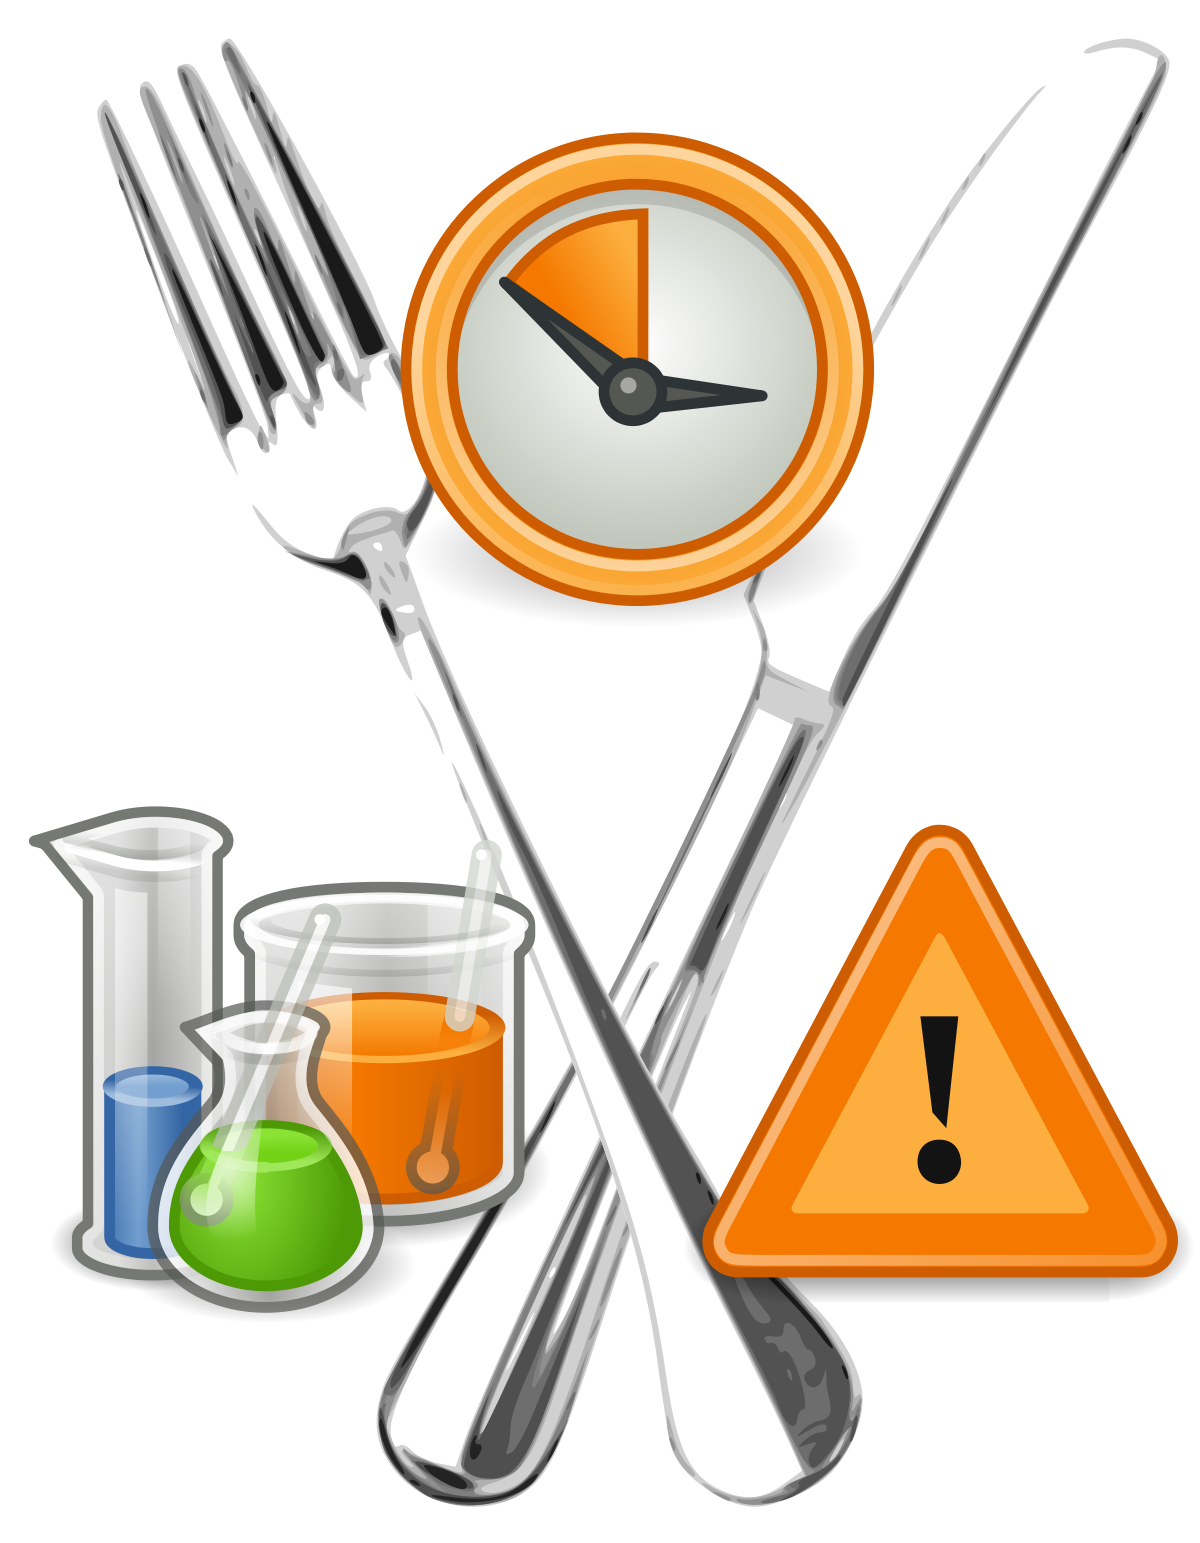 Food safety wikipedia . Heat clipart physical hazard